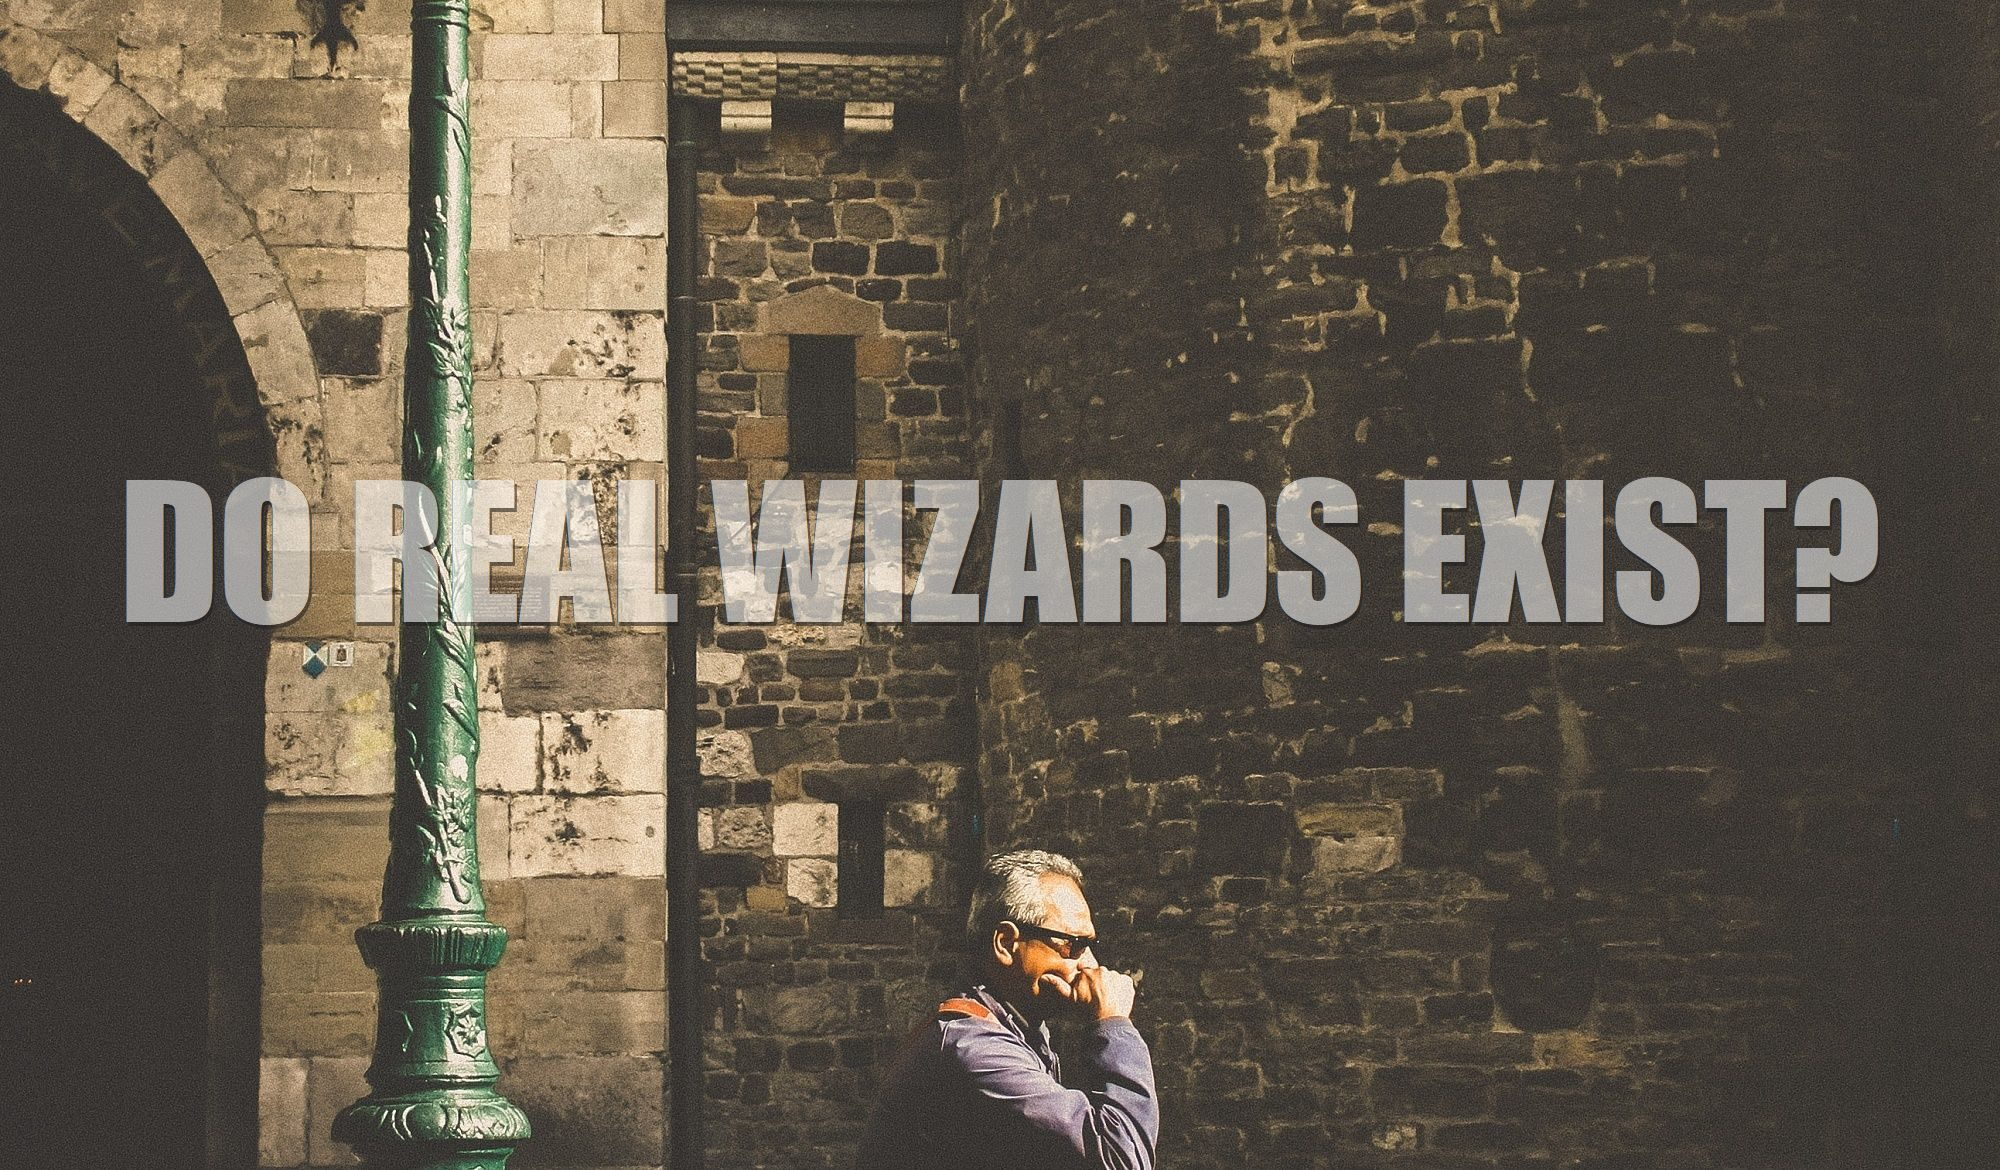 Do-real-wizards-exist-how-do-I-learn-how-to-become-a-wizard-il-2000